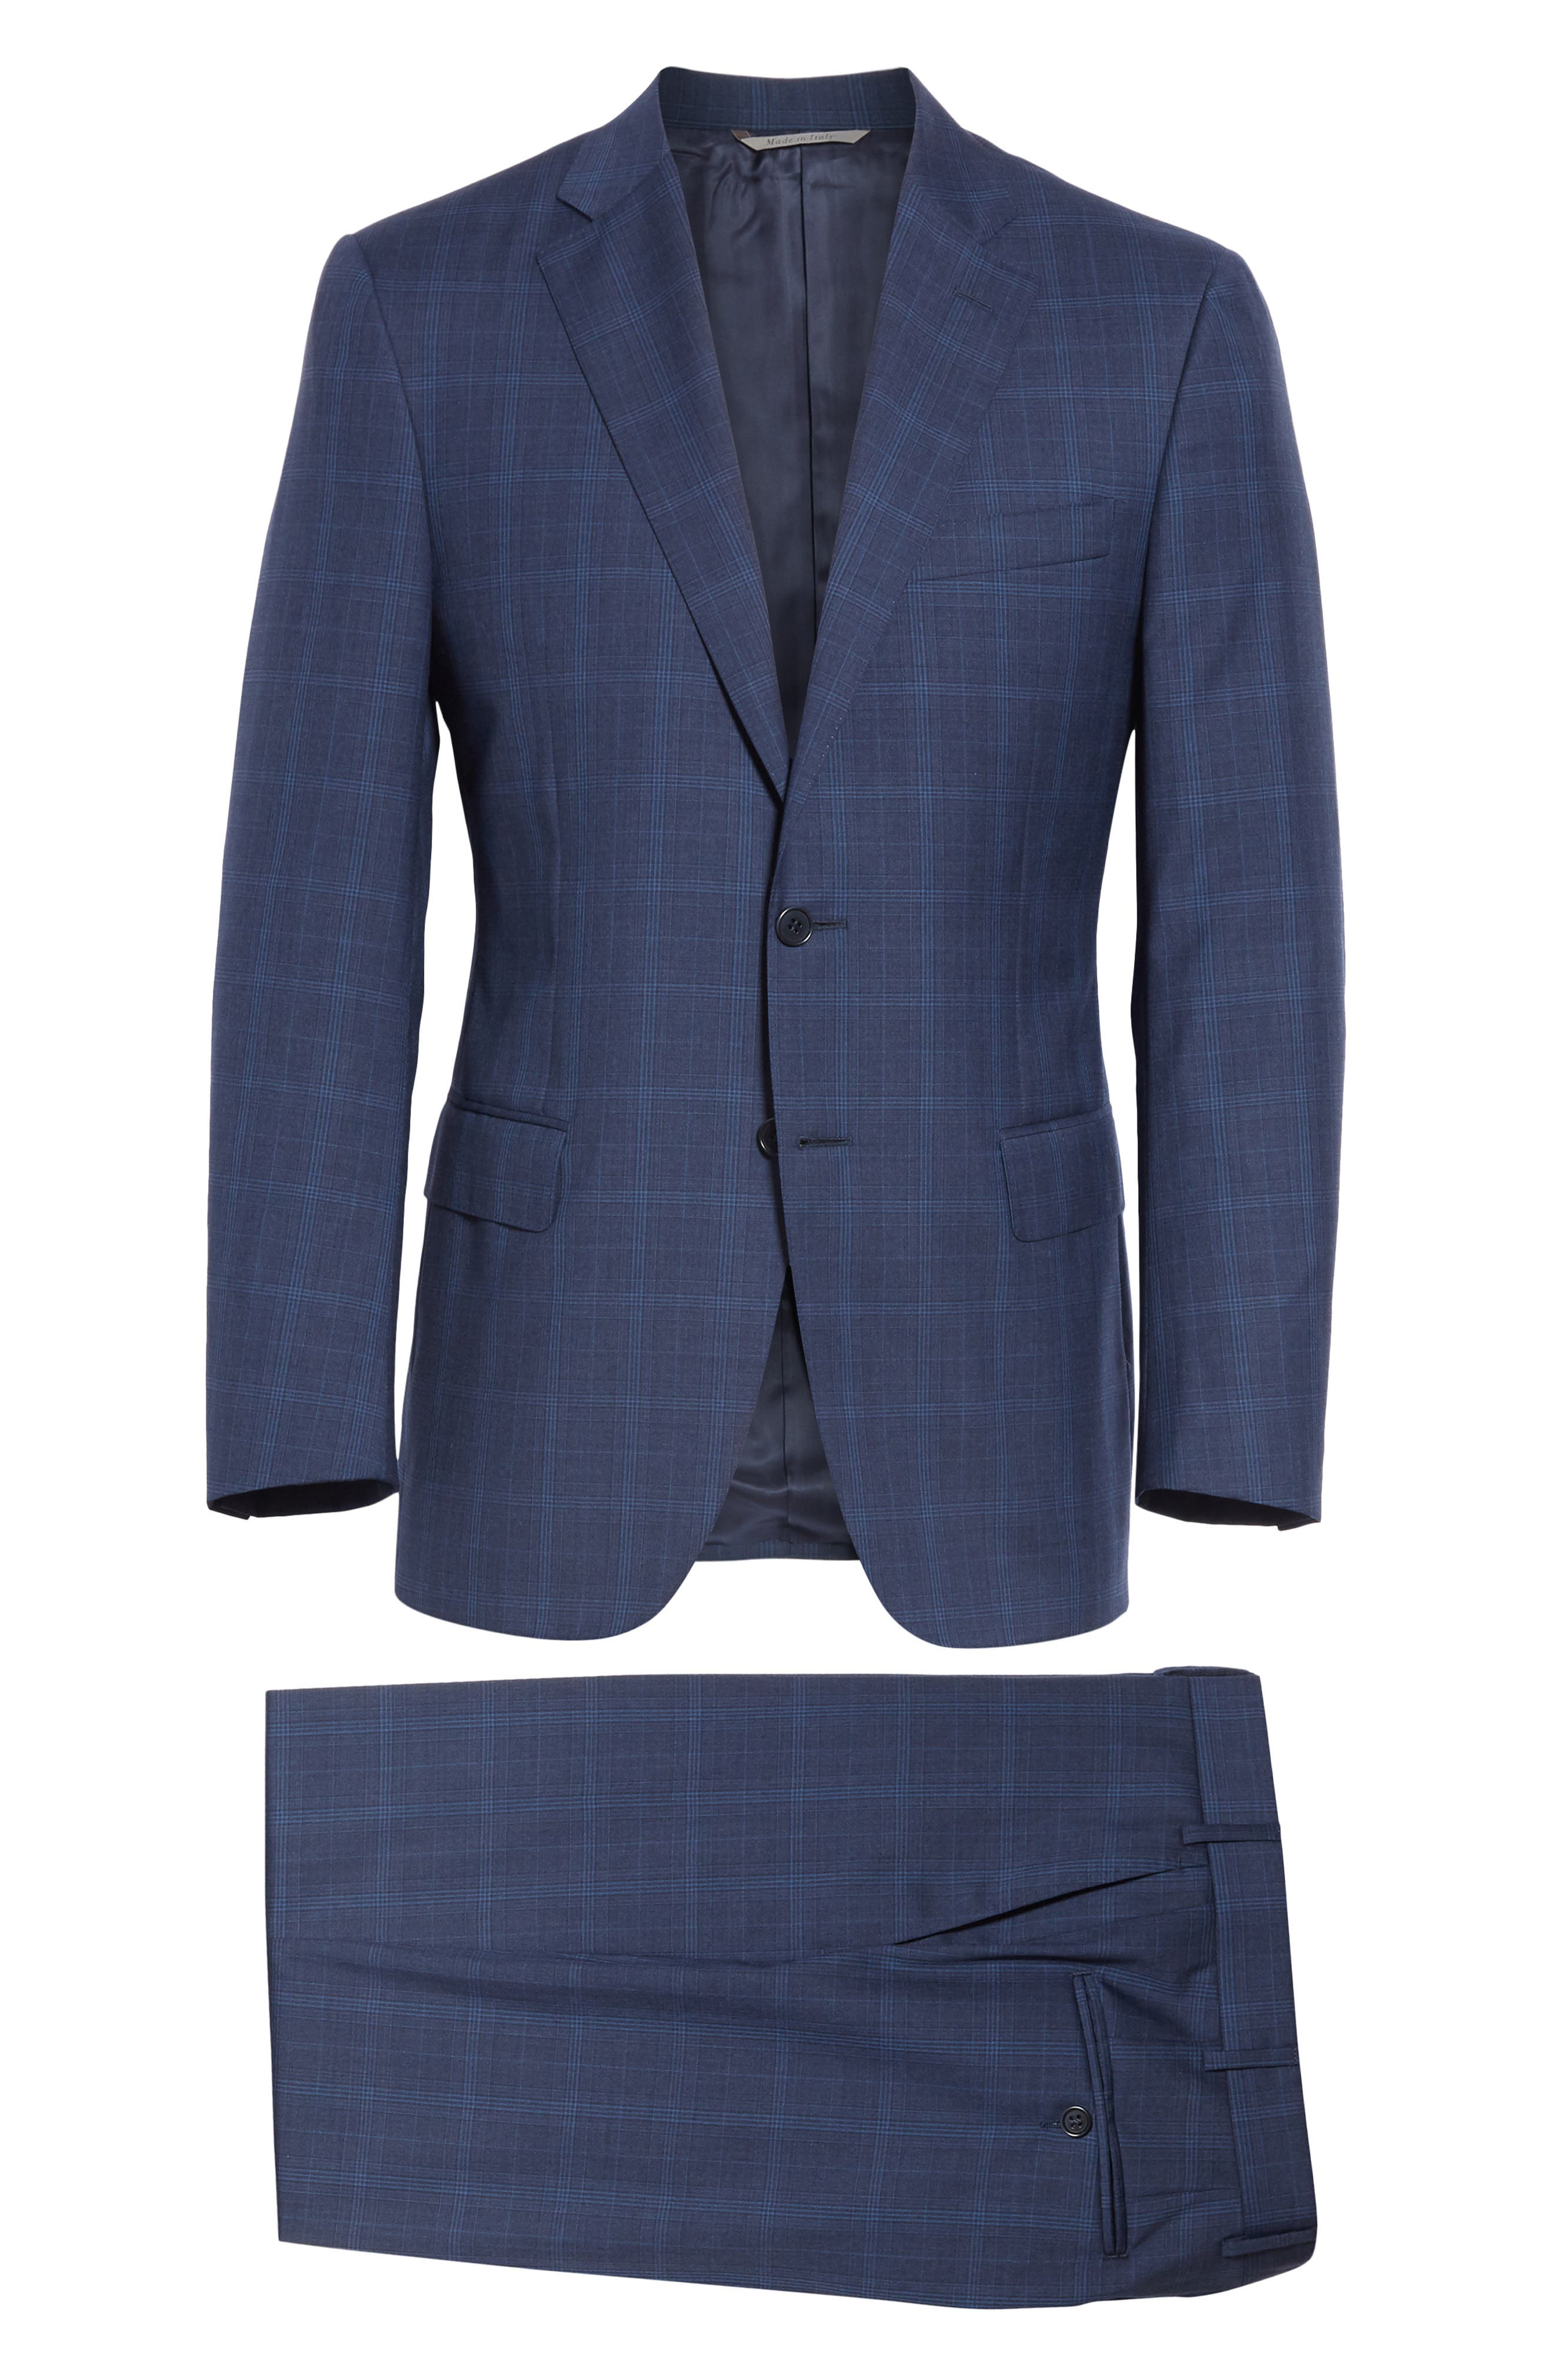 CANALI, Sienna Classic Fit Plaid Wool Suit, Alternate thumbnail 8, color, NAVY